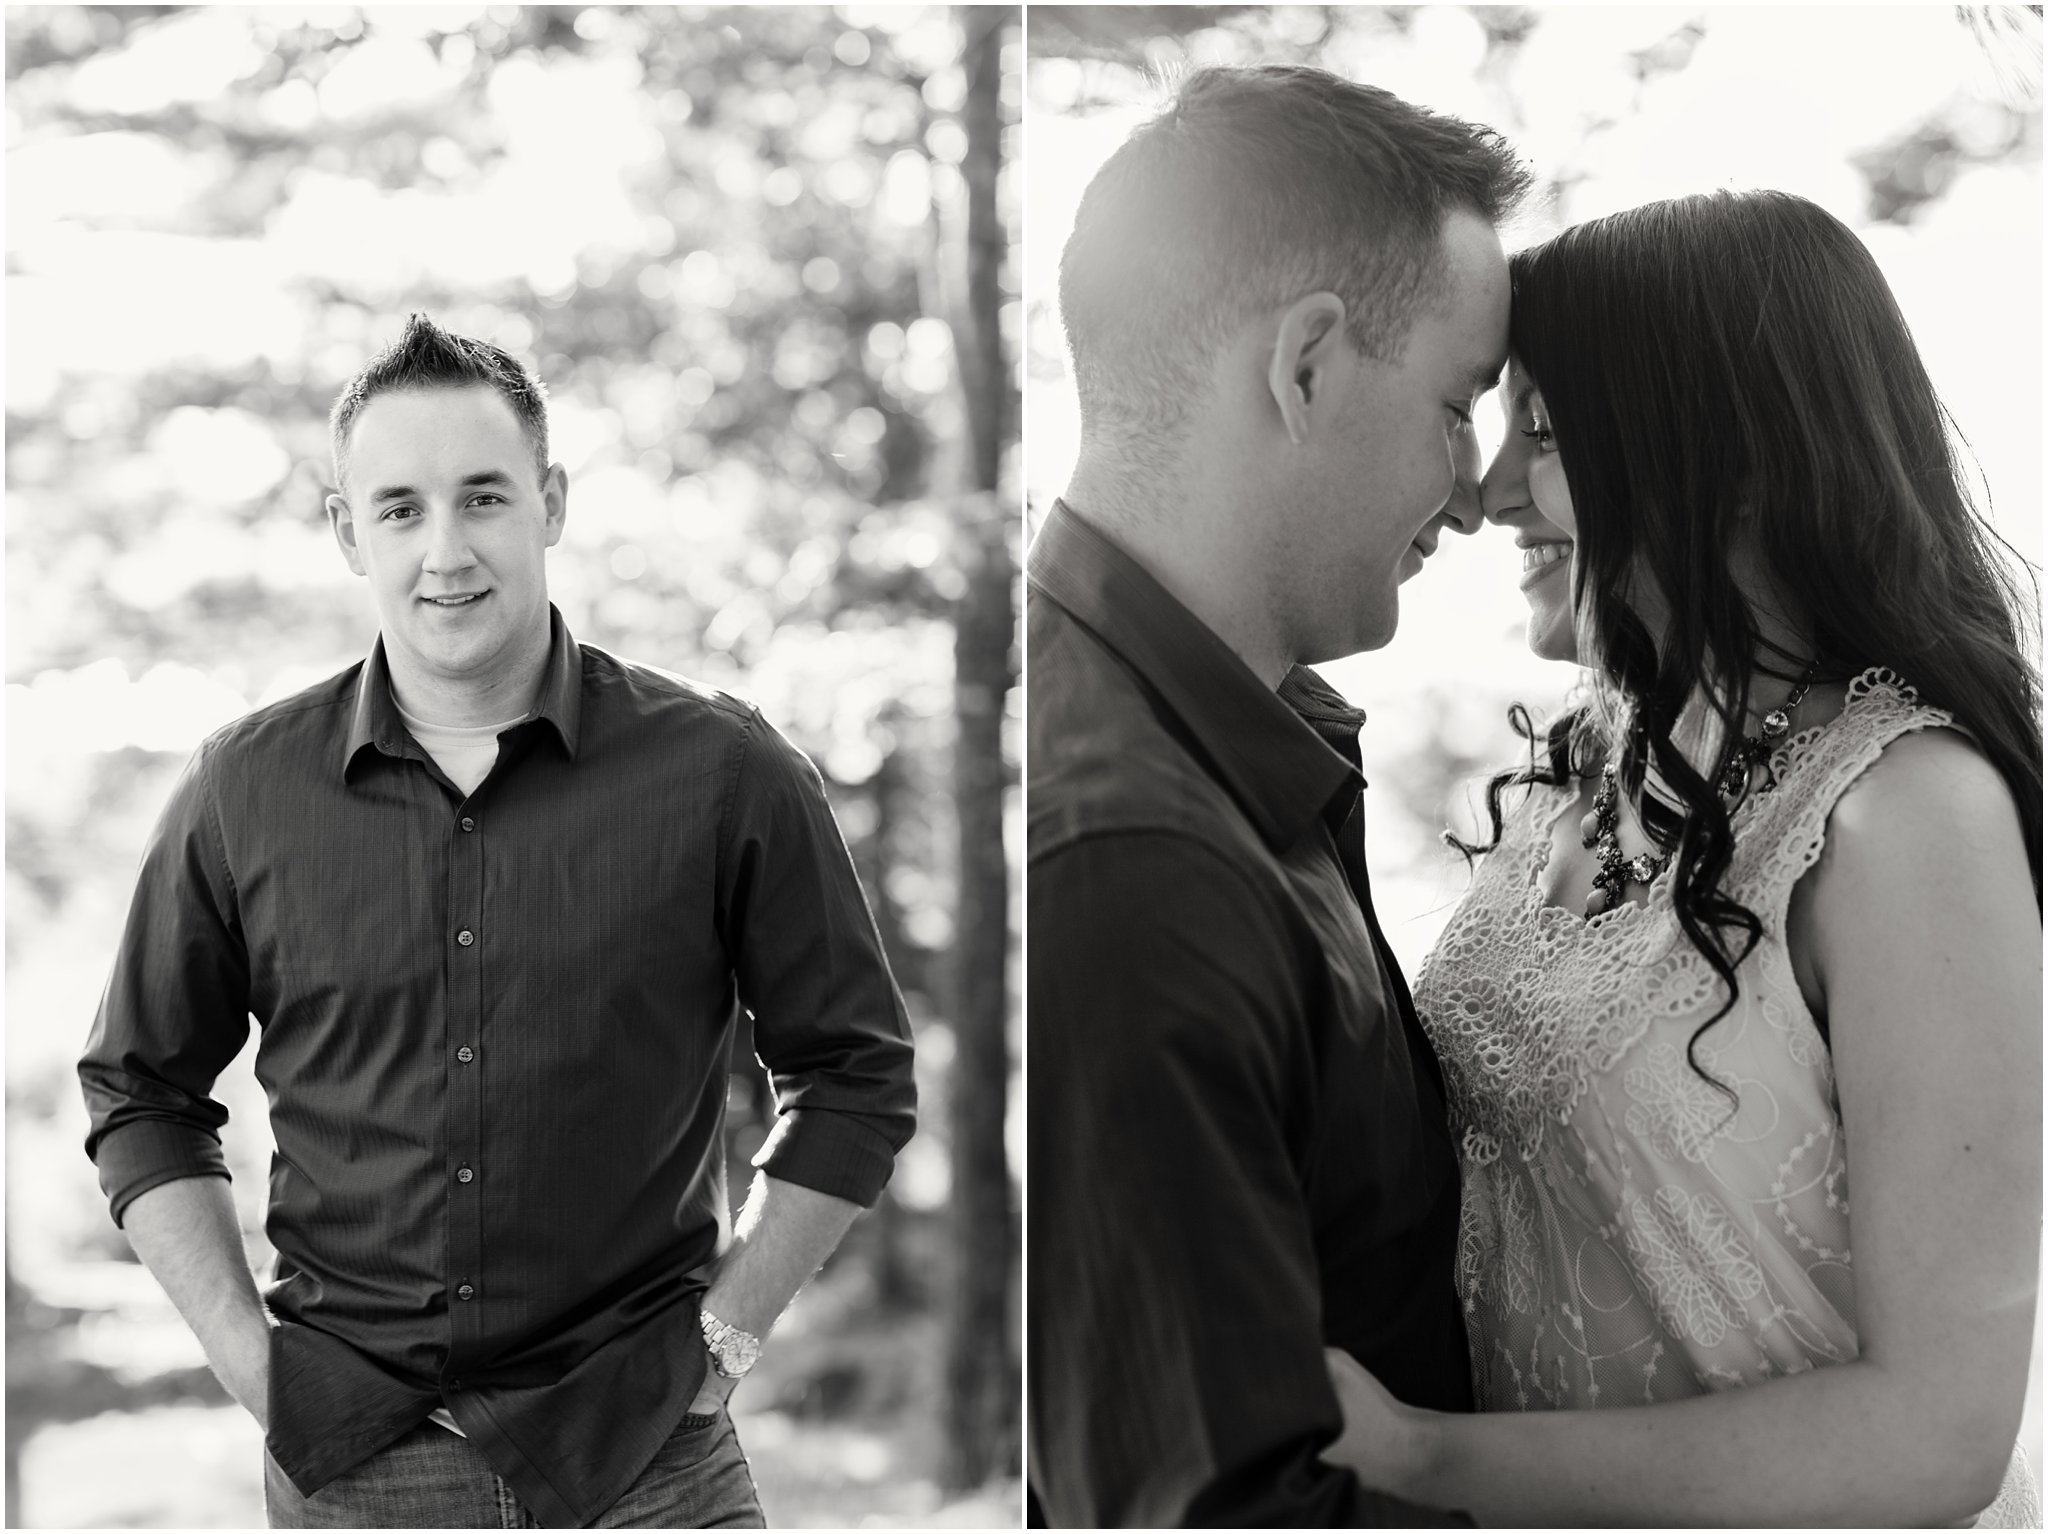 Groom-to-Be and Couple